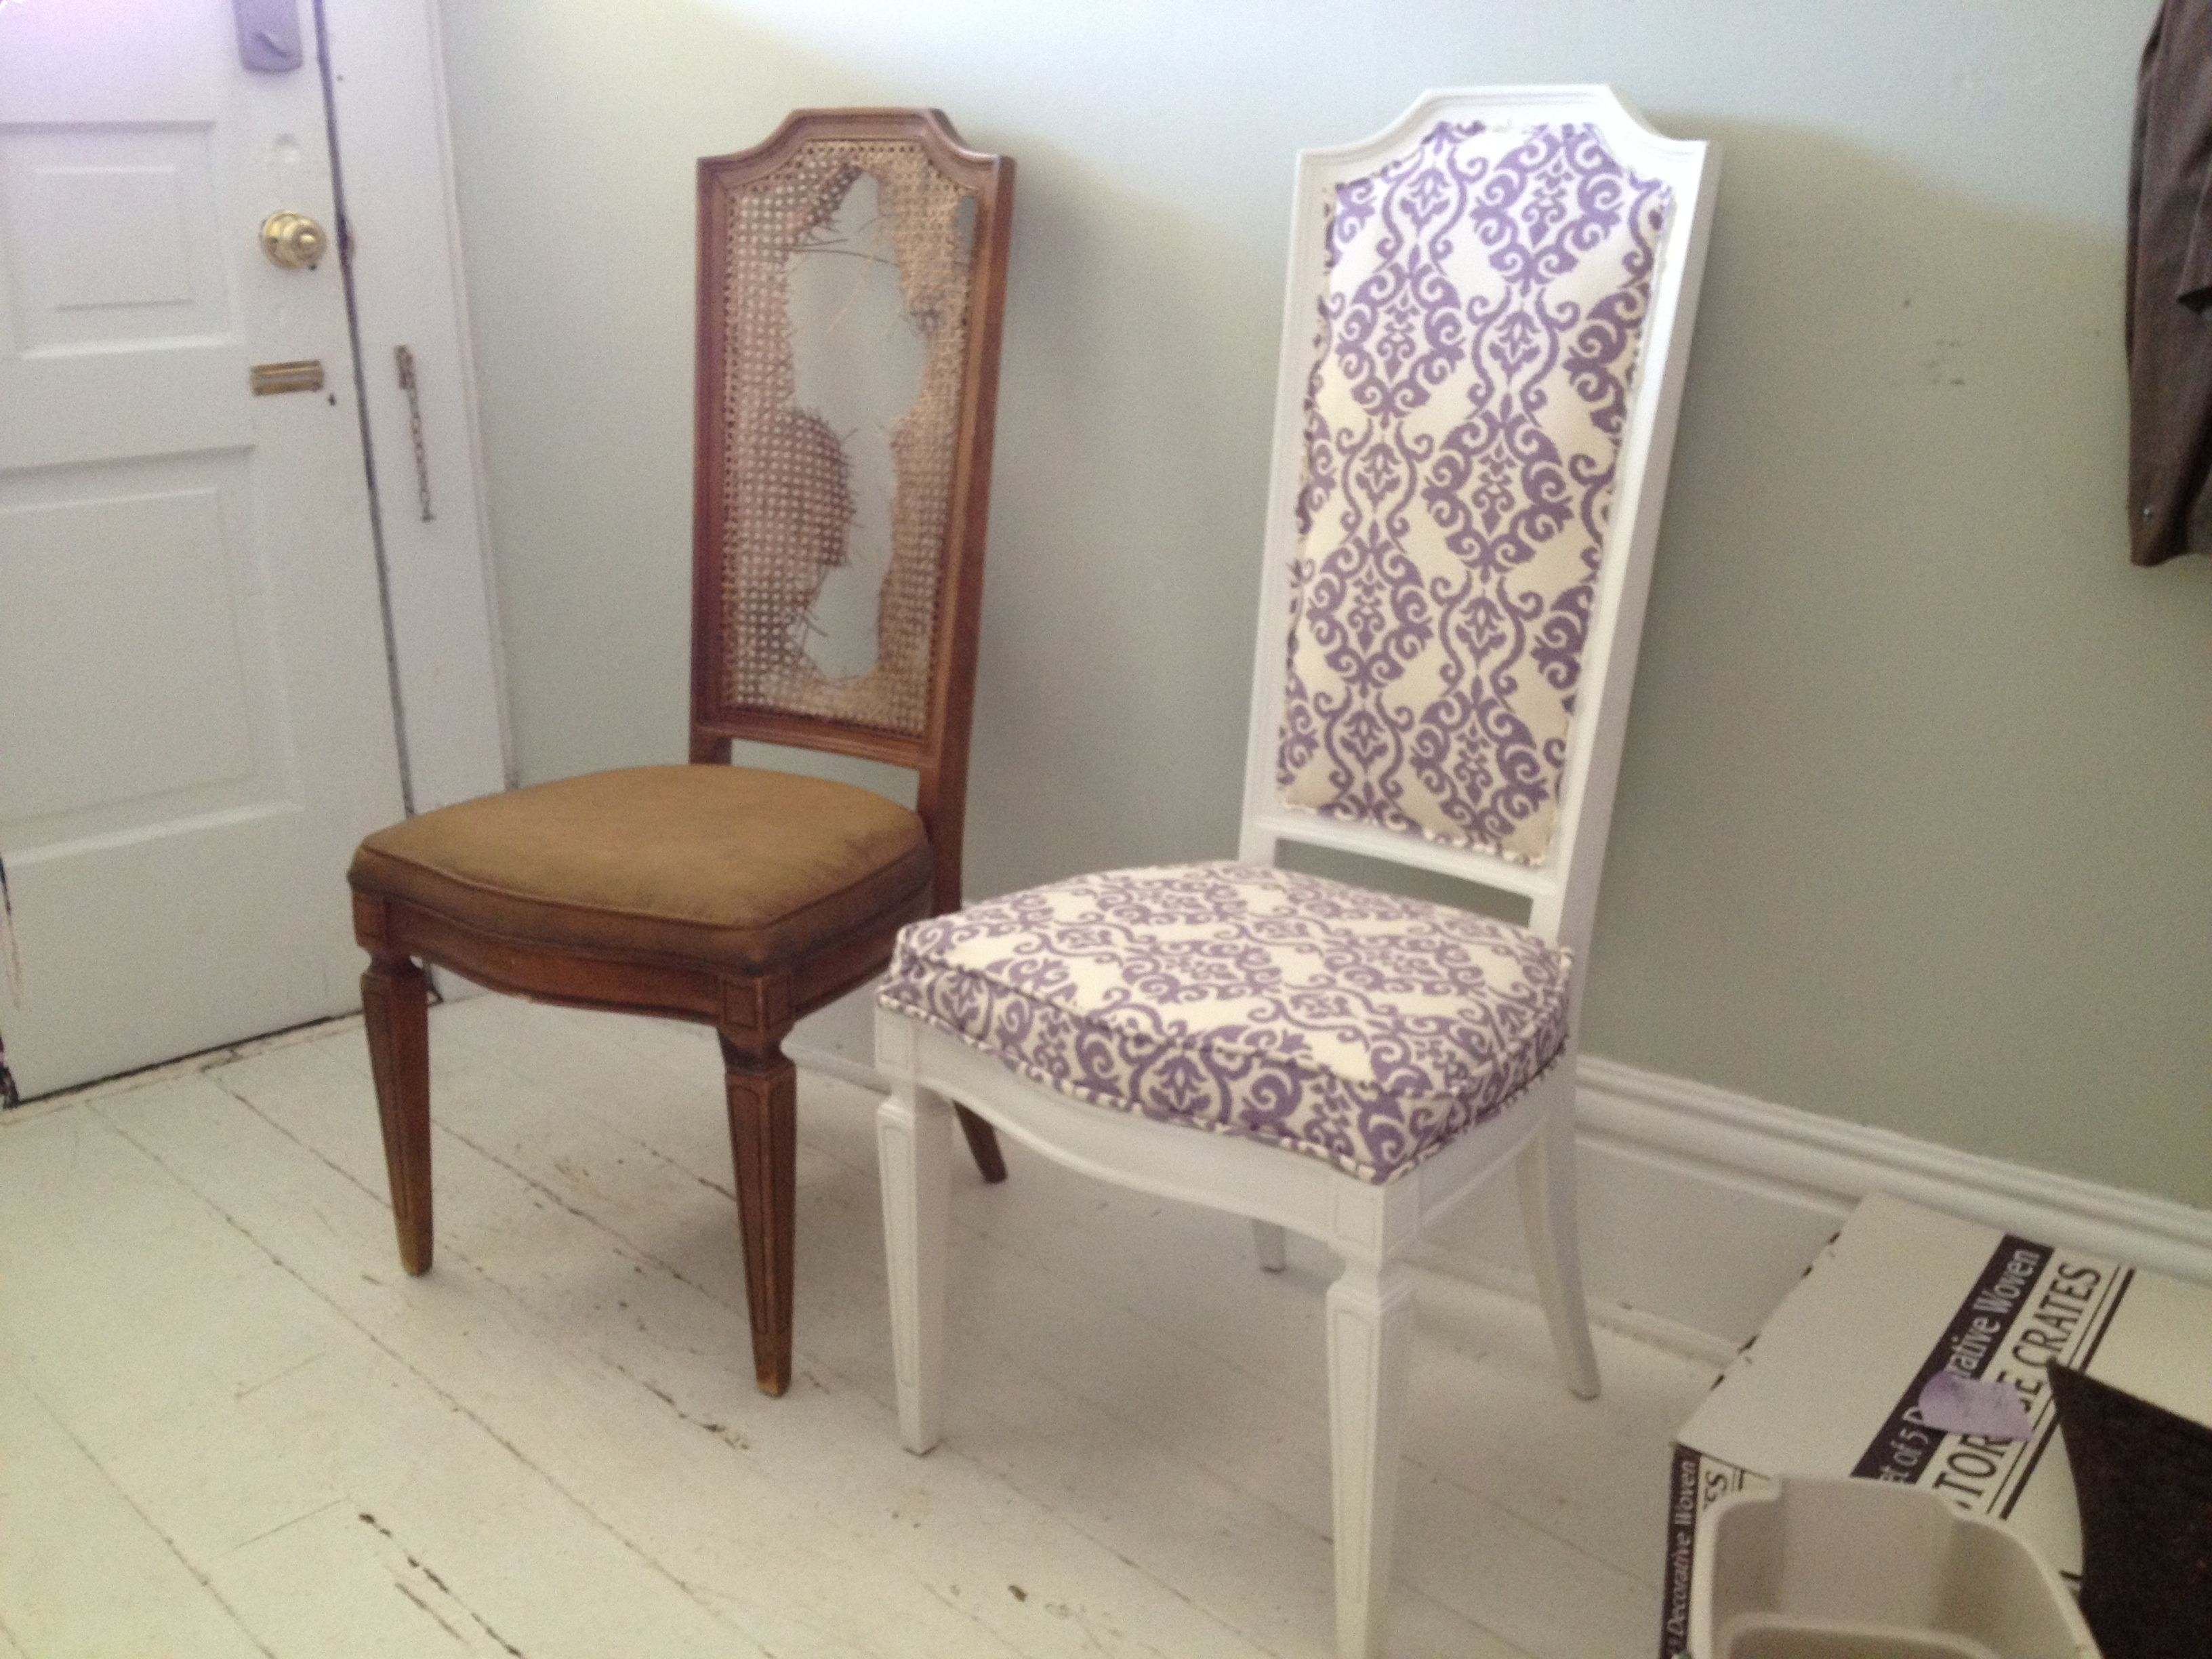 Diydiningchairreupholsteringcrafthubshowtoreupholstera Magnificent Upholster Dining Room Chairs Decorating Design